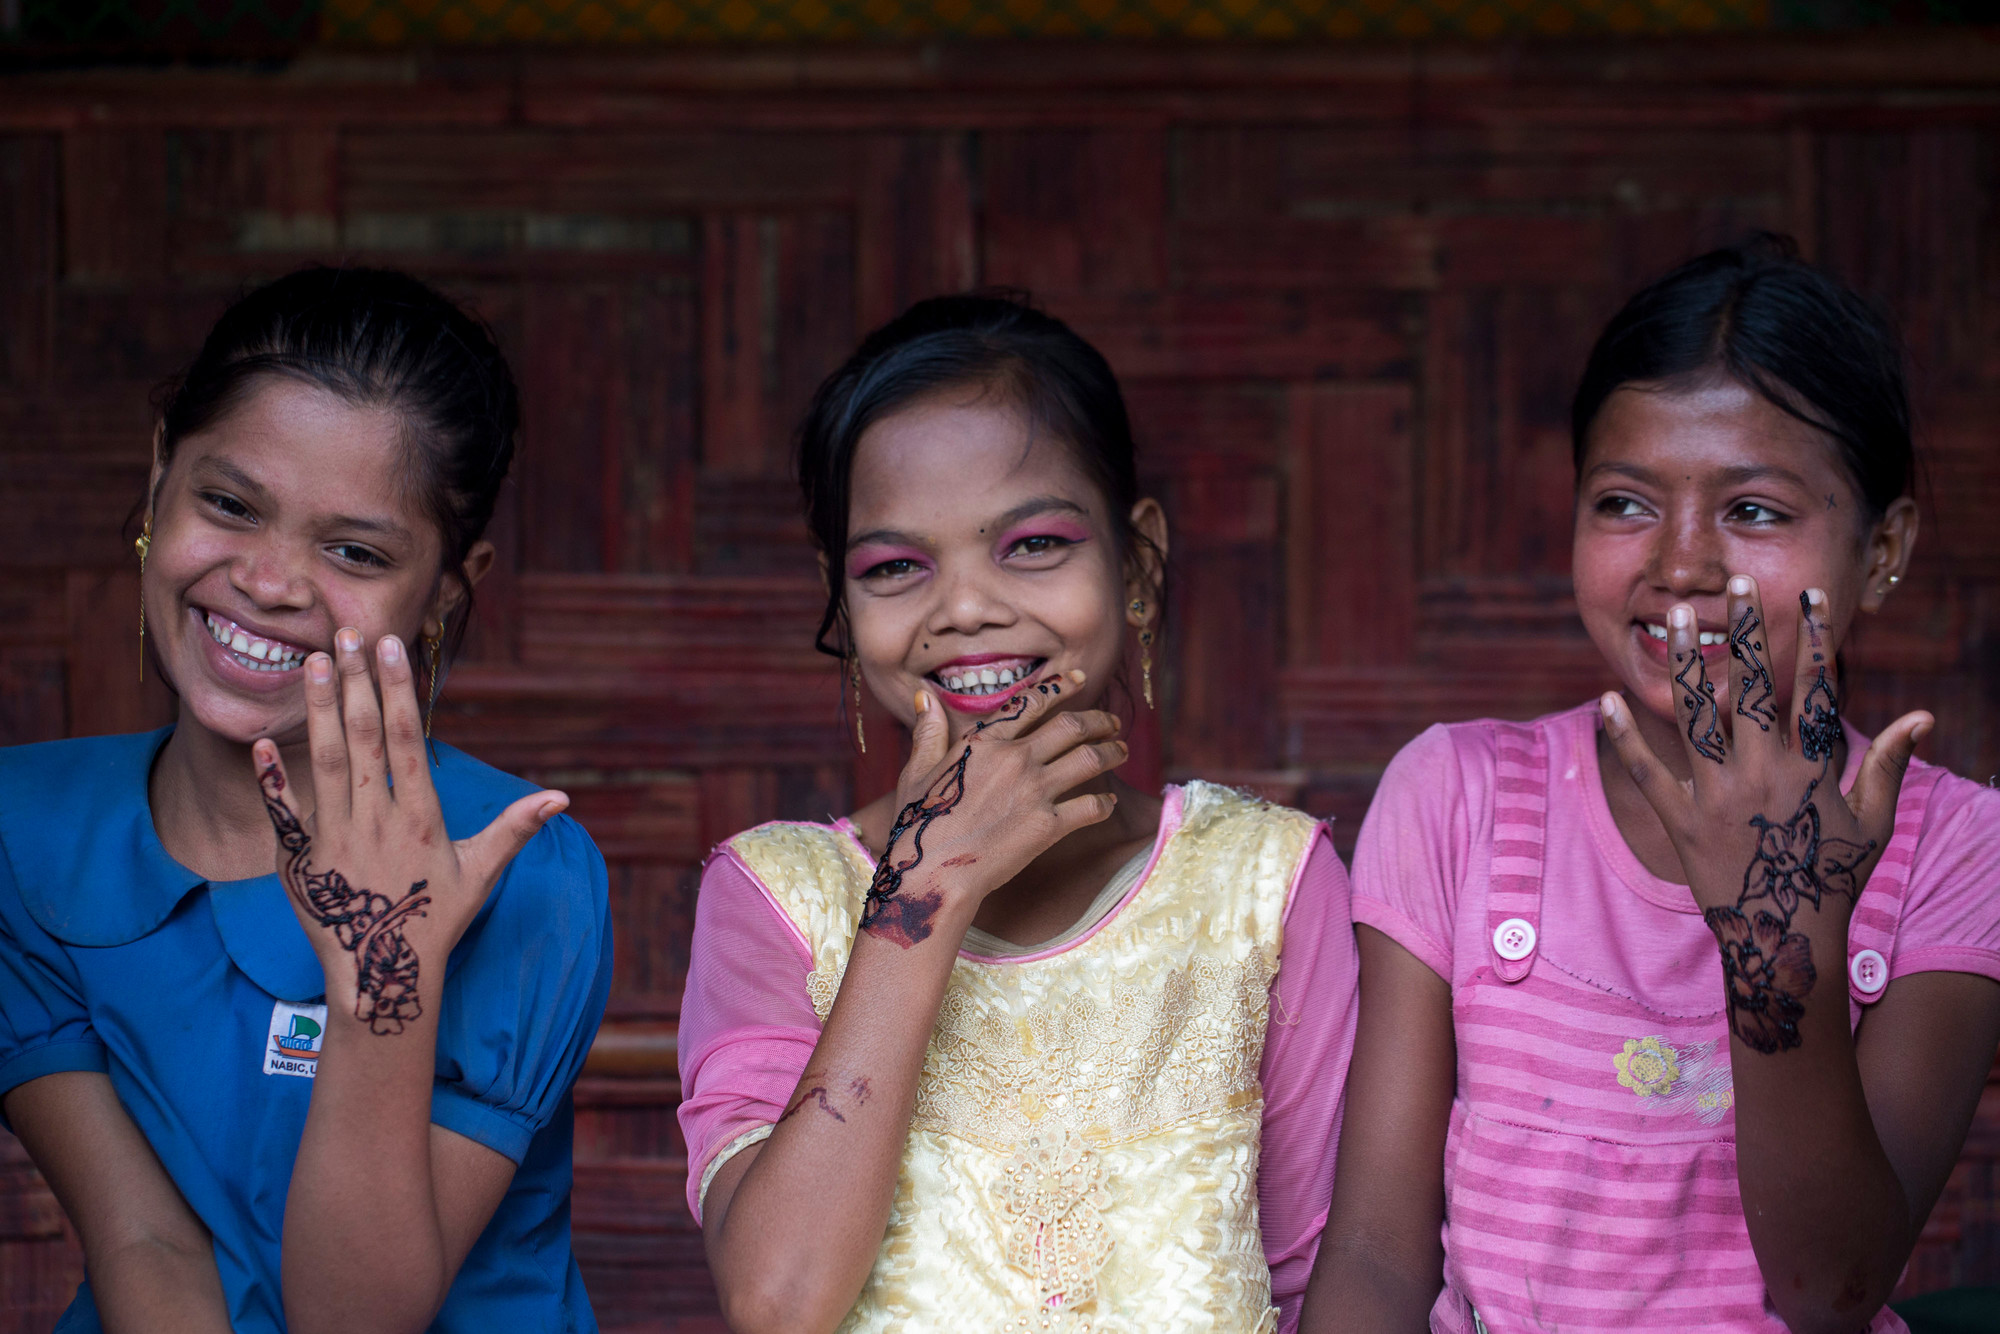 Three girls smile while displaying traditional decorations drawn on their hands.